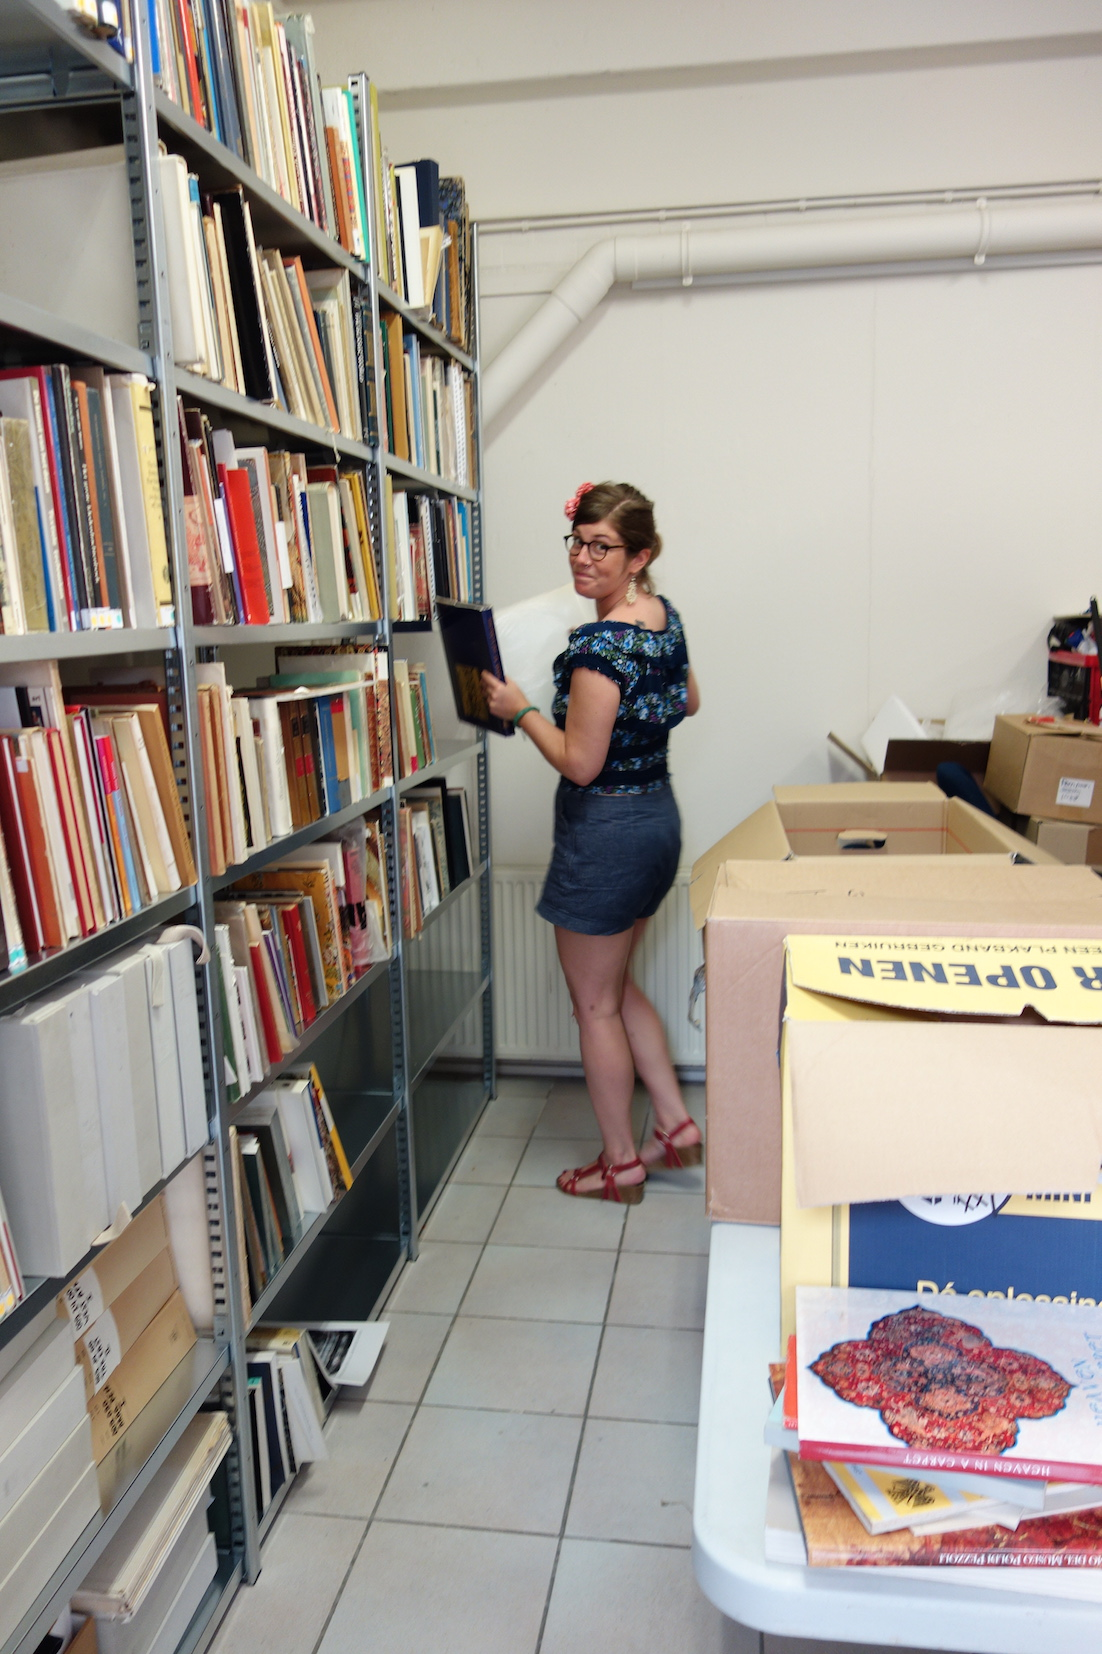 Nelleke Honcoop, one of the TRC volunteers, sorting out the new publications for the TRC Library.